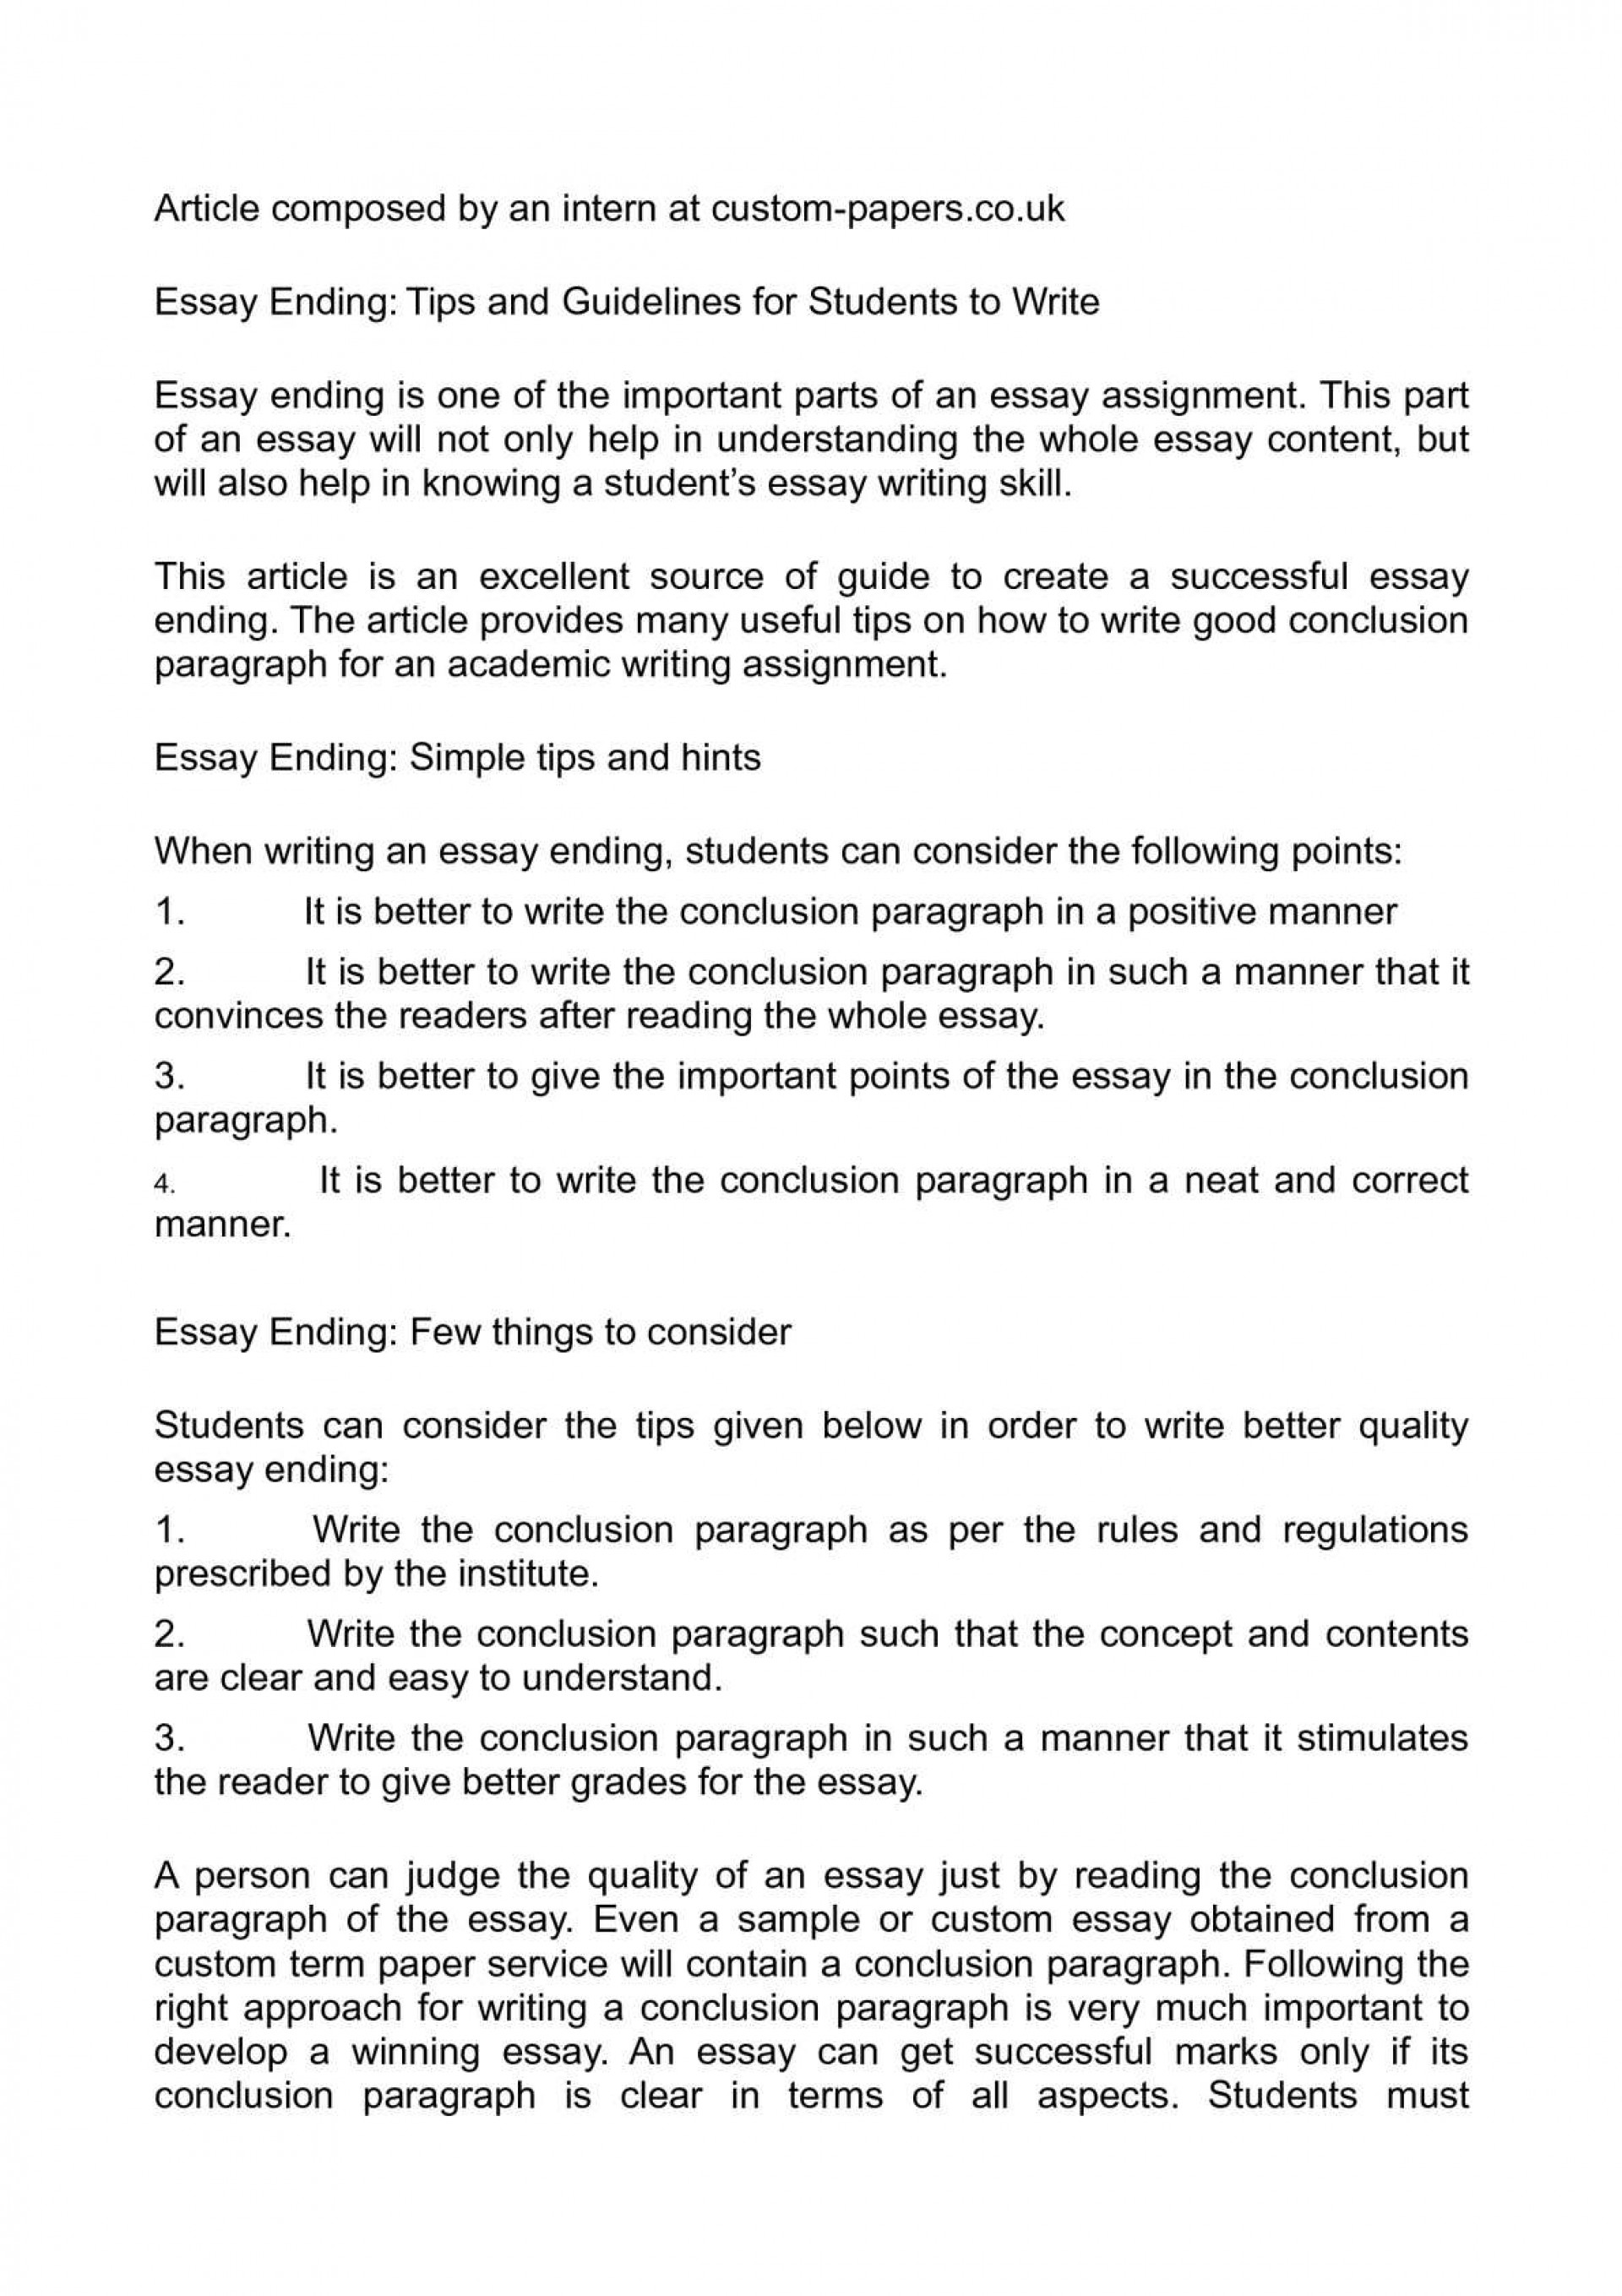 001 Parts Of An Essay Ending Tips And Guidelines For Students To Write Writing Persuasi Pdf Three Persuasive Stupendous Speech Conclusion Argumentative Quiz 1920